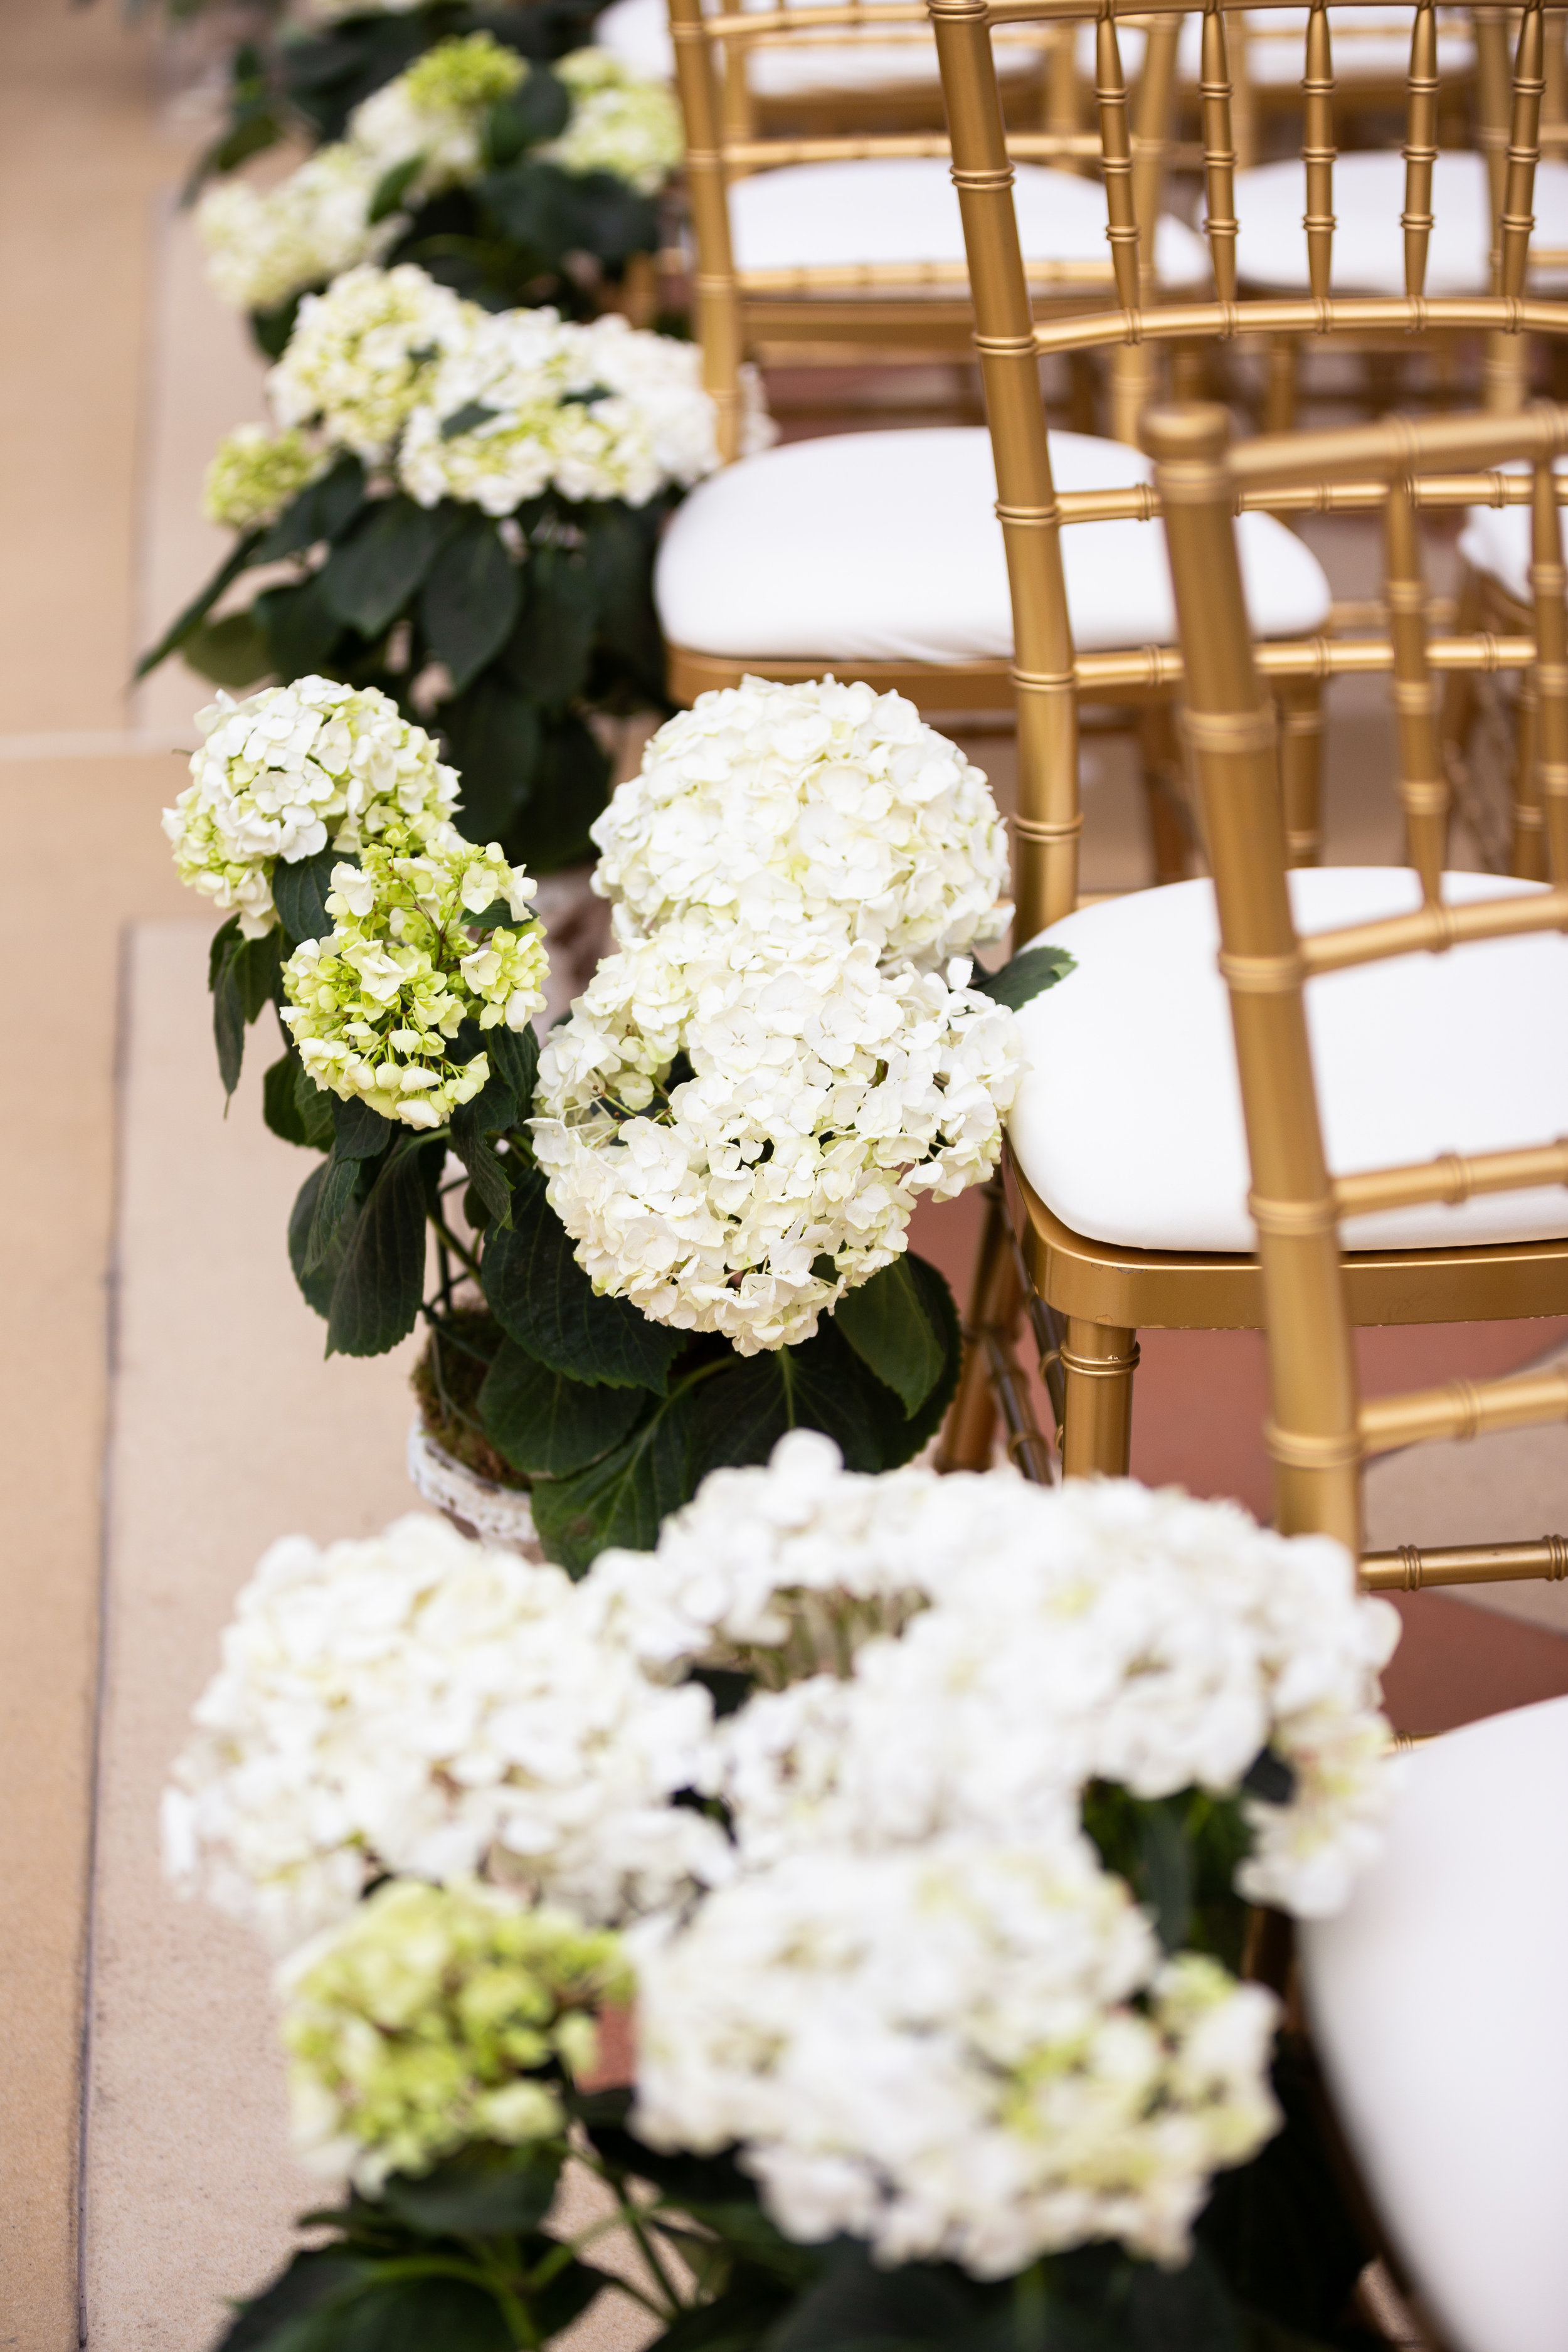 Potted hydrangea on the aisle at a wedding ceremony.Wedding Planner:  Andrea Eppolito Events   | Photography  D2 Tuscan Wedding Photography  | Videography  M Place Productions  | Venue & Catering:  Bellagio  | Floral & Decor:  Destinations by Design  | Lighting:  LED Unplugged   | Music: Classical Entertainment &  DJ Mike Fox  | Hair & Make Up:  Amelia C & Co